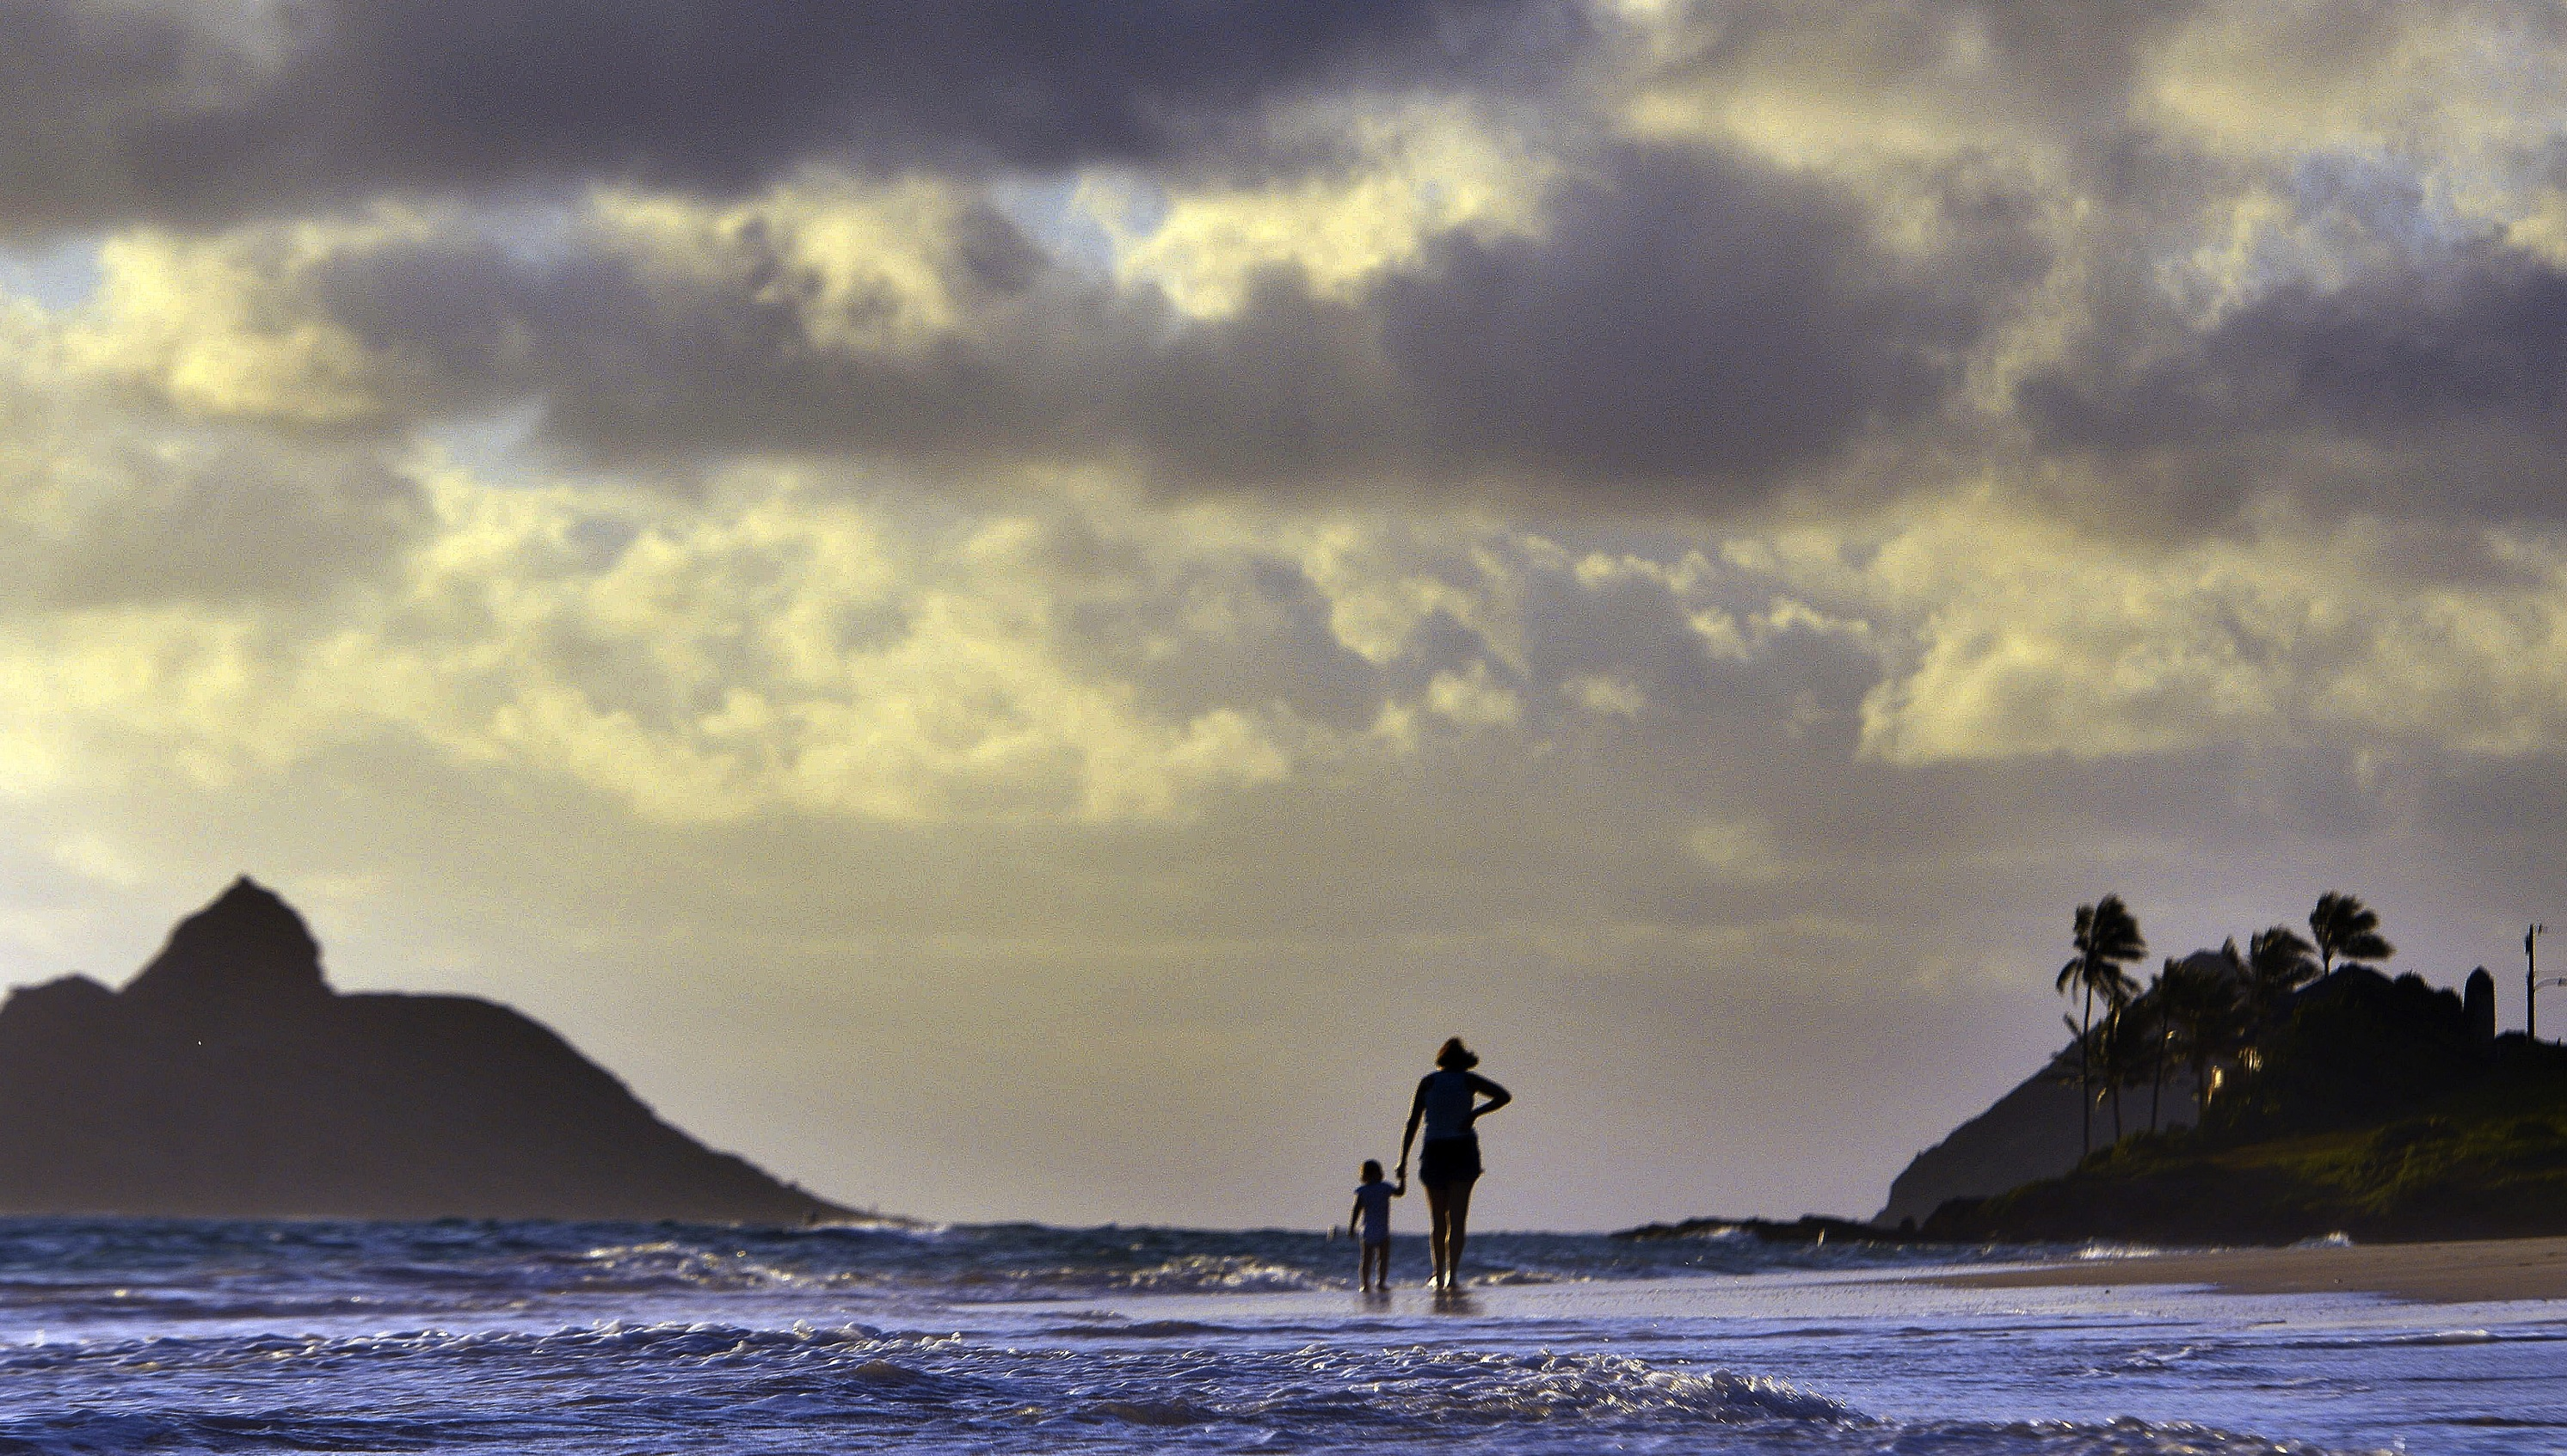 Anne Kllingshirn, of Kailua, Hawaii walks with her daughter Emma, 1, as storm clouds float overhead during the sunrise hours on Kailua Beach, in Kailua, Hawaii, Thursday morning Aug. 7, 2014. The National Weather Service downgraded Hurricane Iselle to a tropical storm about 50 miles before it was expected to make landfall early Friday in the southern part of Hawaii's Big Island. By 2 a.m. Hawaii Standard Time on Friday, the storm was swirling about 10 miles from the Kau coastline. (AP Photo/Luci Pemoni